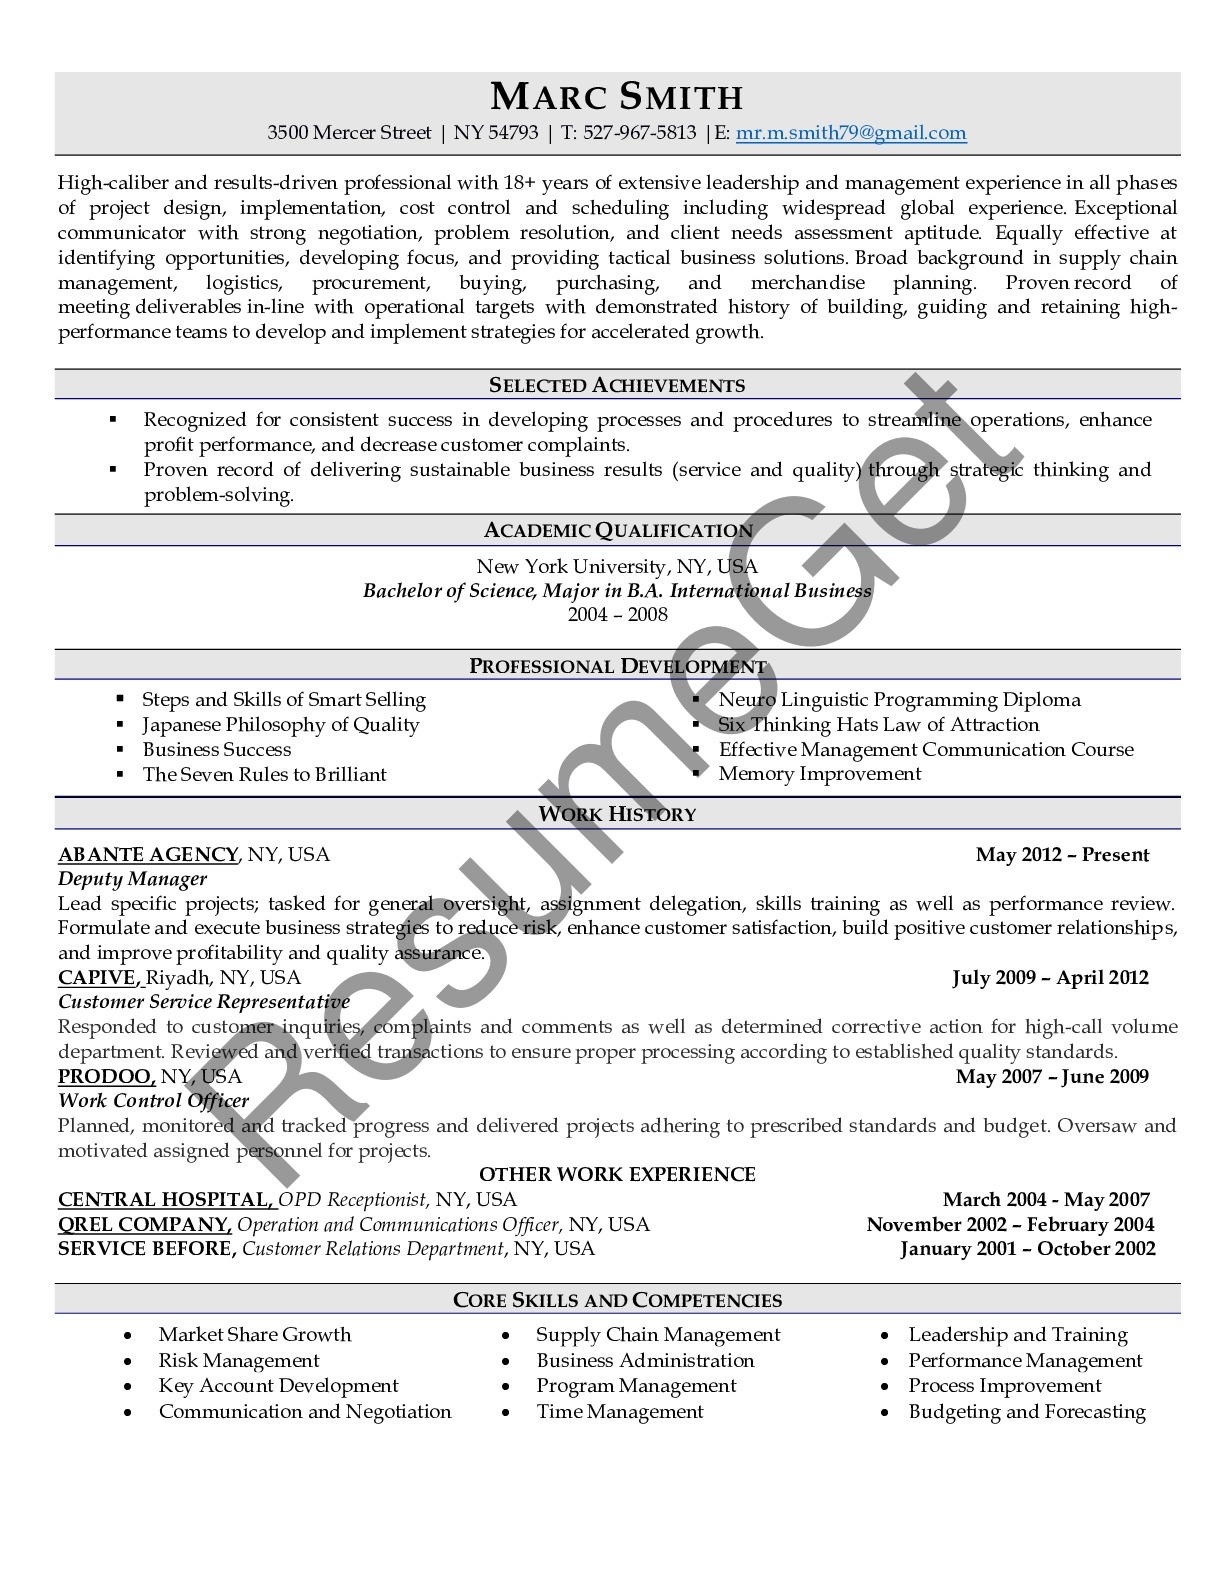 CV Example for Manager